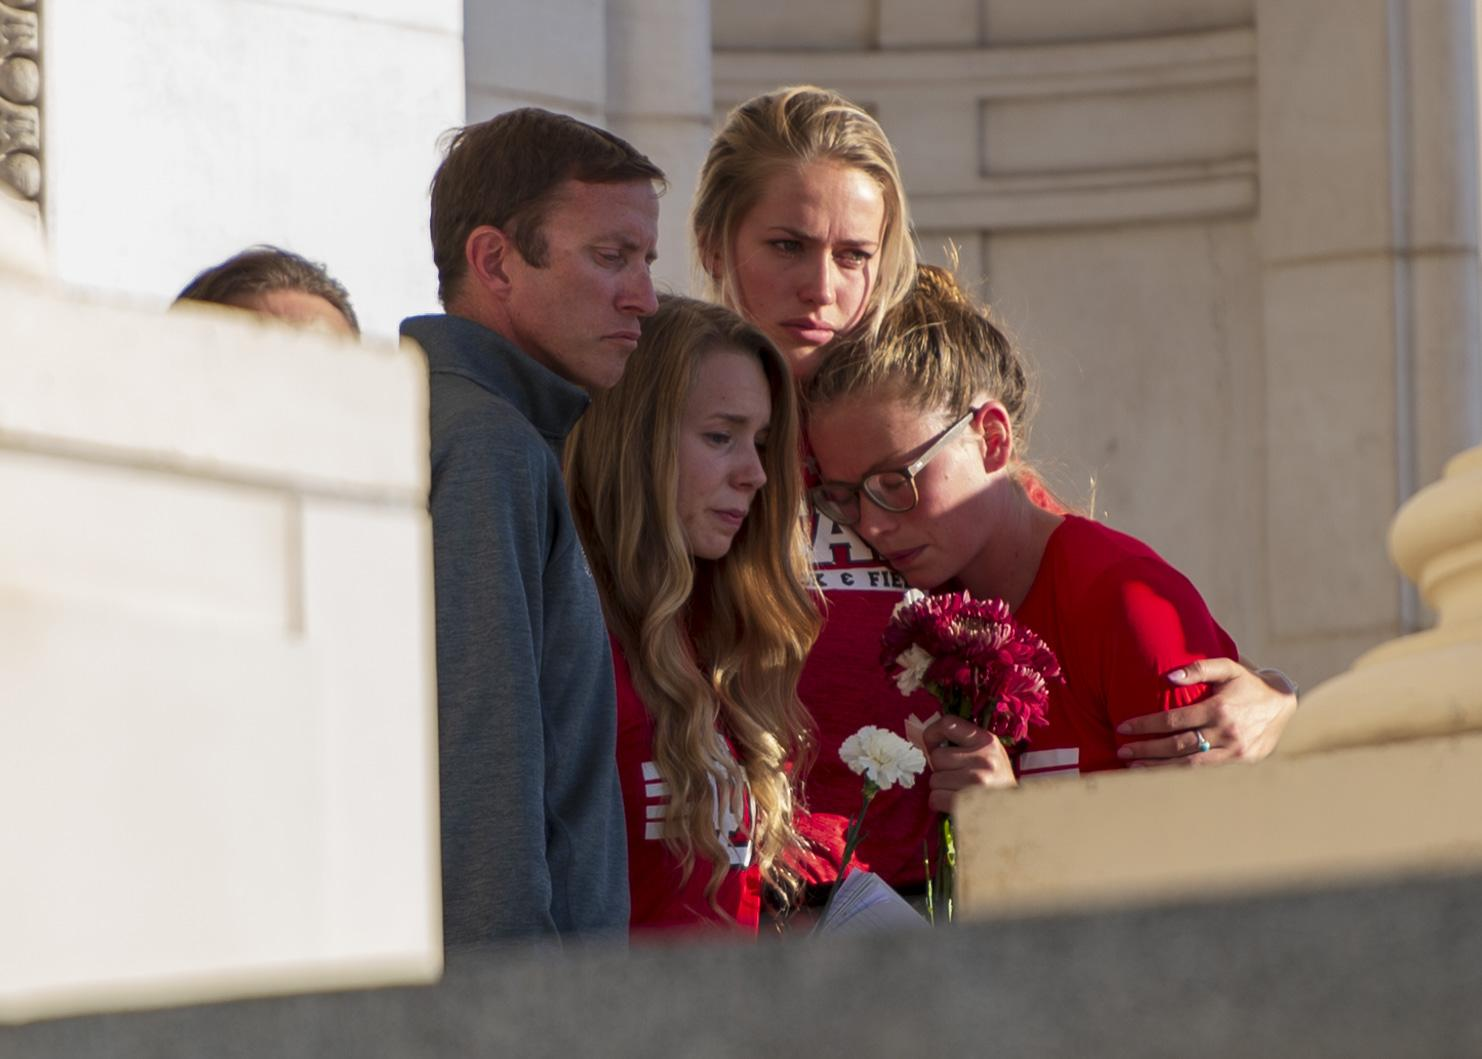 Students, staff, family and friends attend a vigil on the steps of the Park Building for Lauren McCluskey. Chronicle archives.